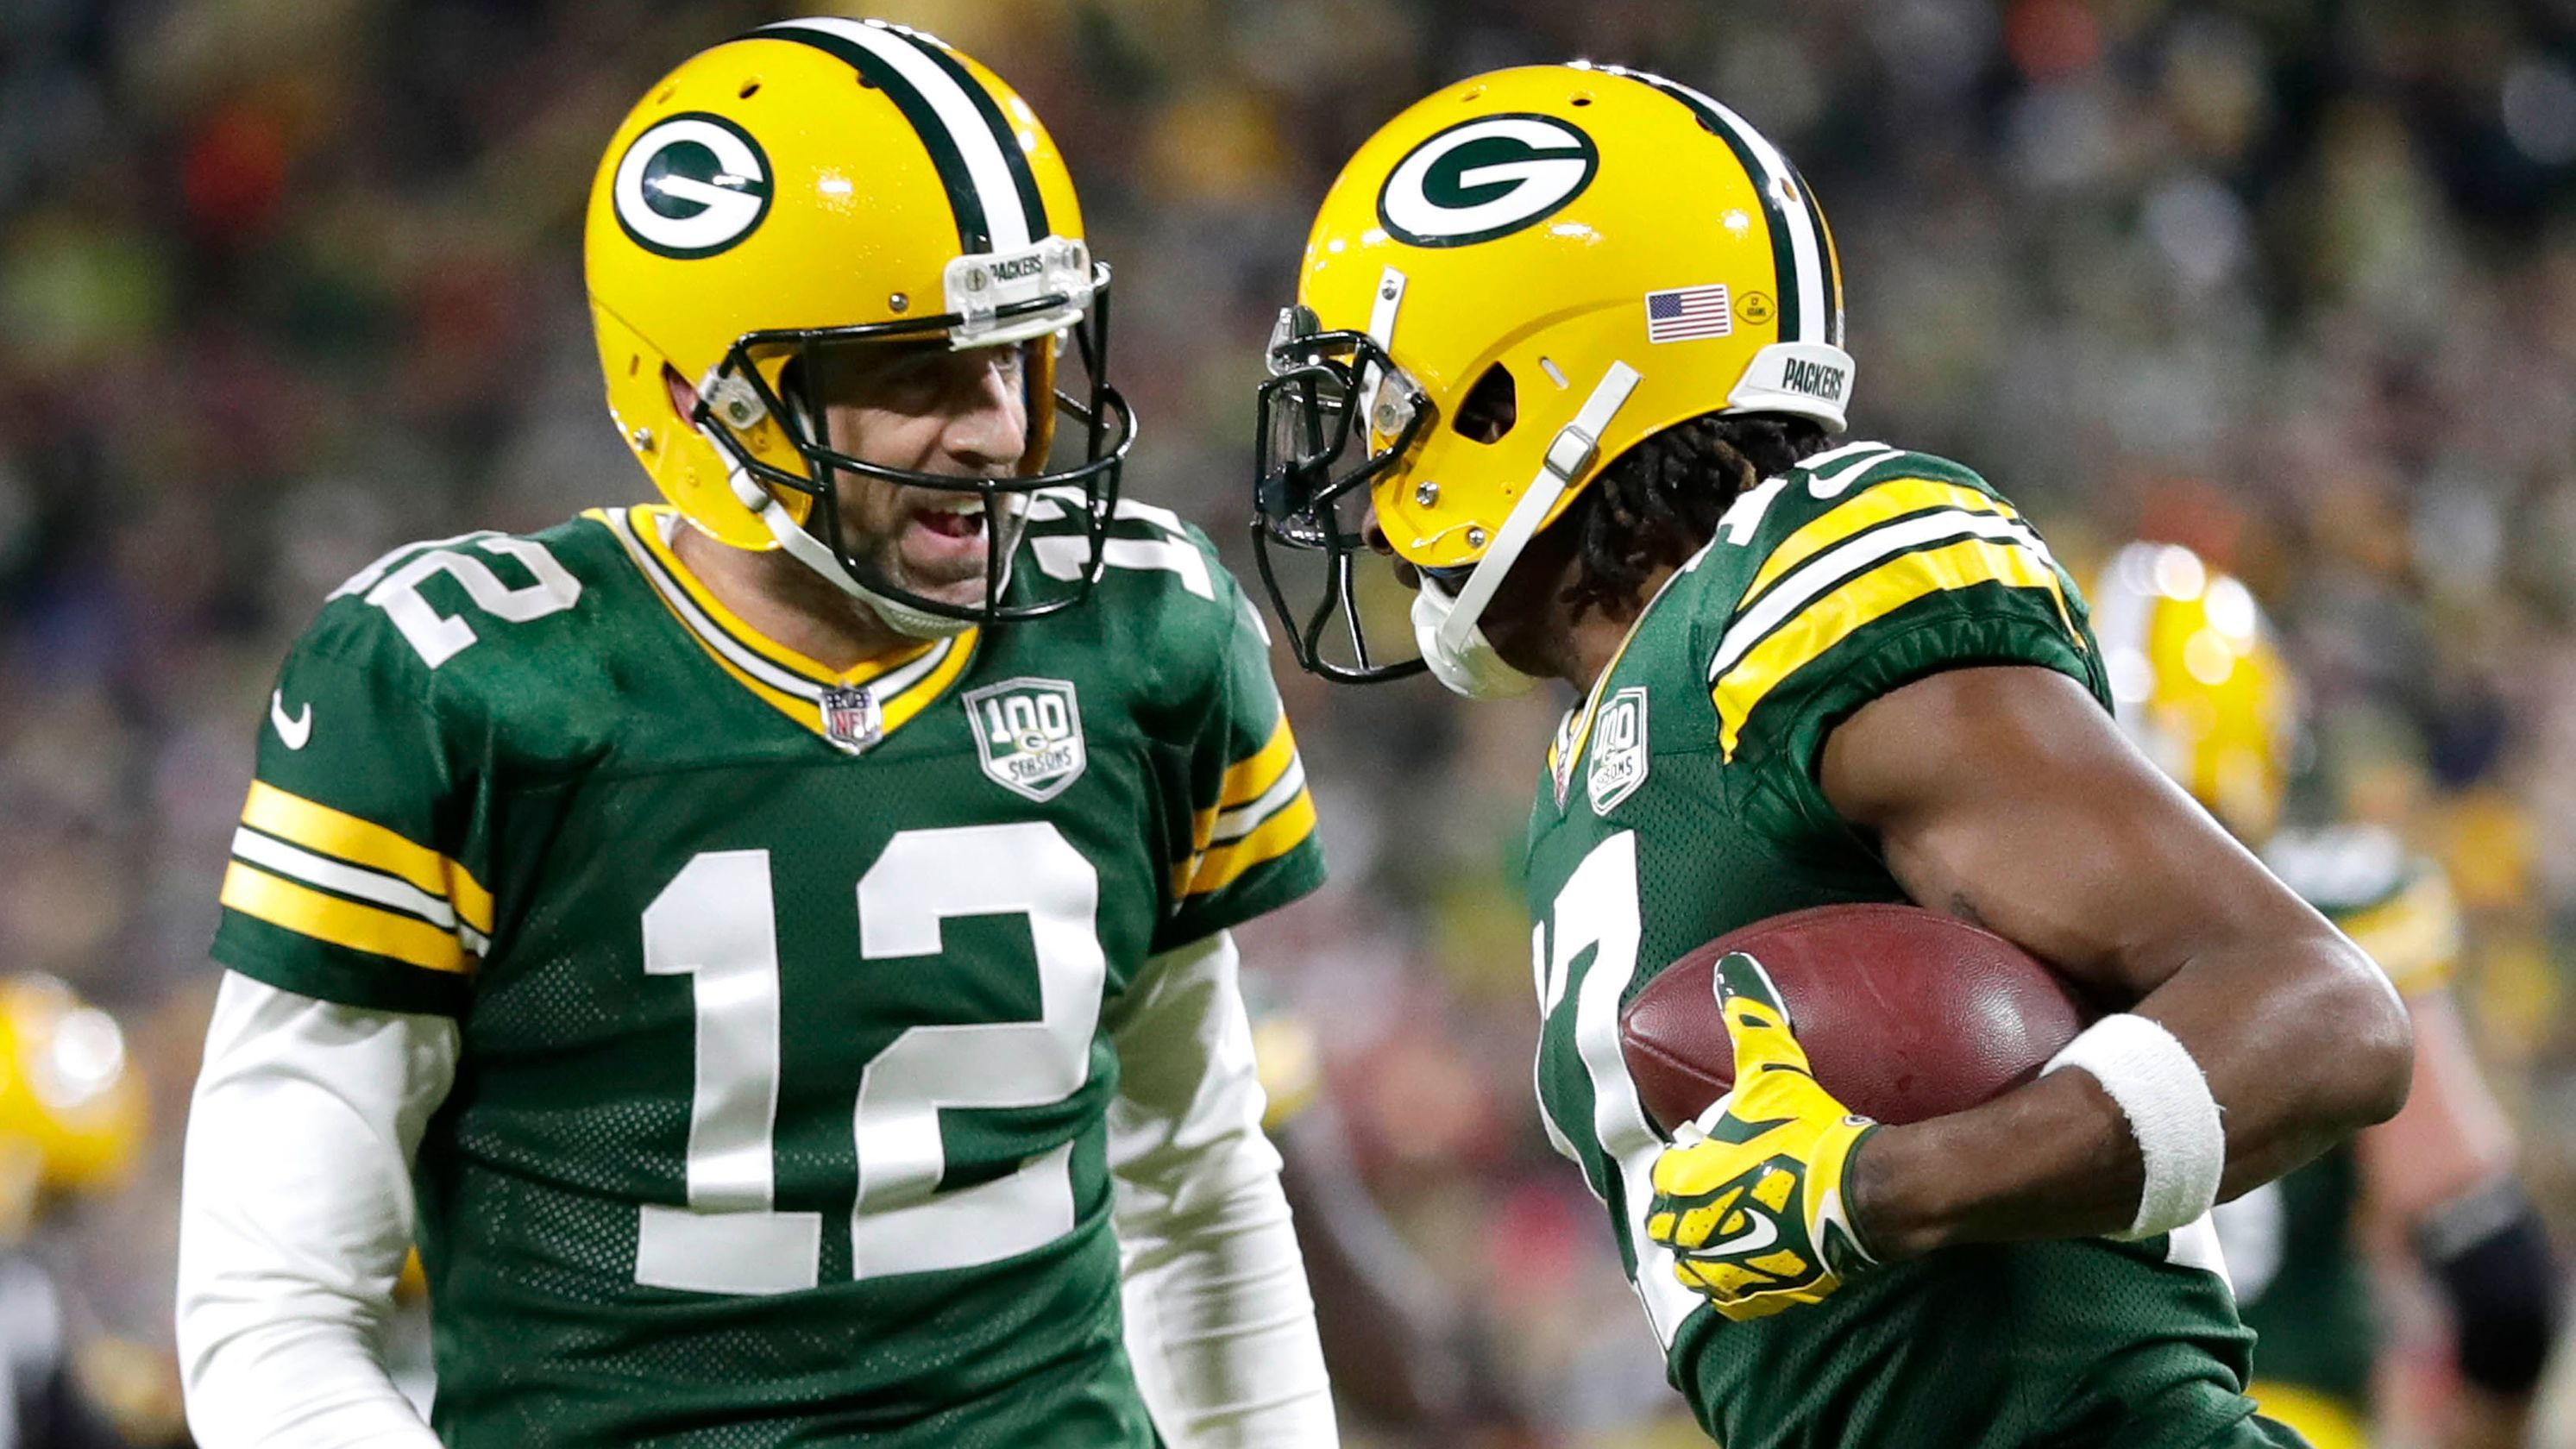 Aaron Rodgers Green Bay Packers Detroitsporotsfrenzy Com Football Rodgers Green Bay Aaron Rodgers